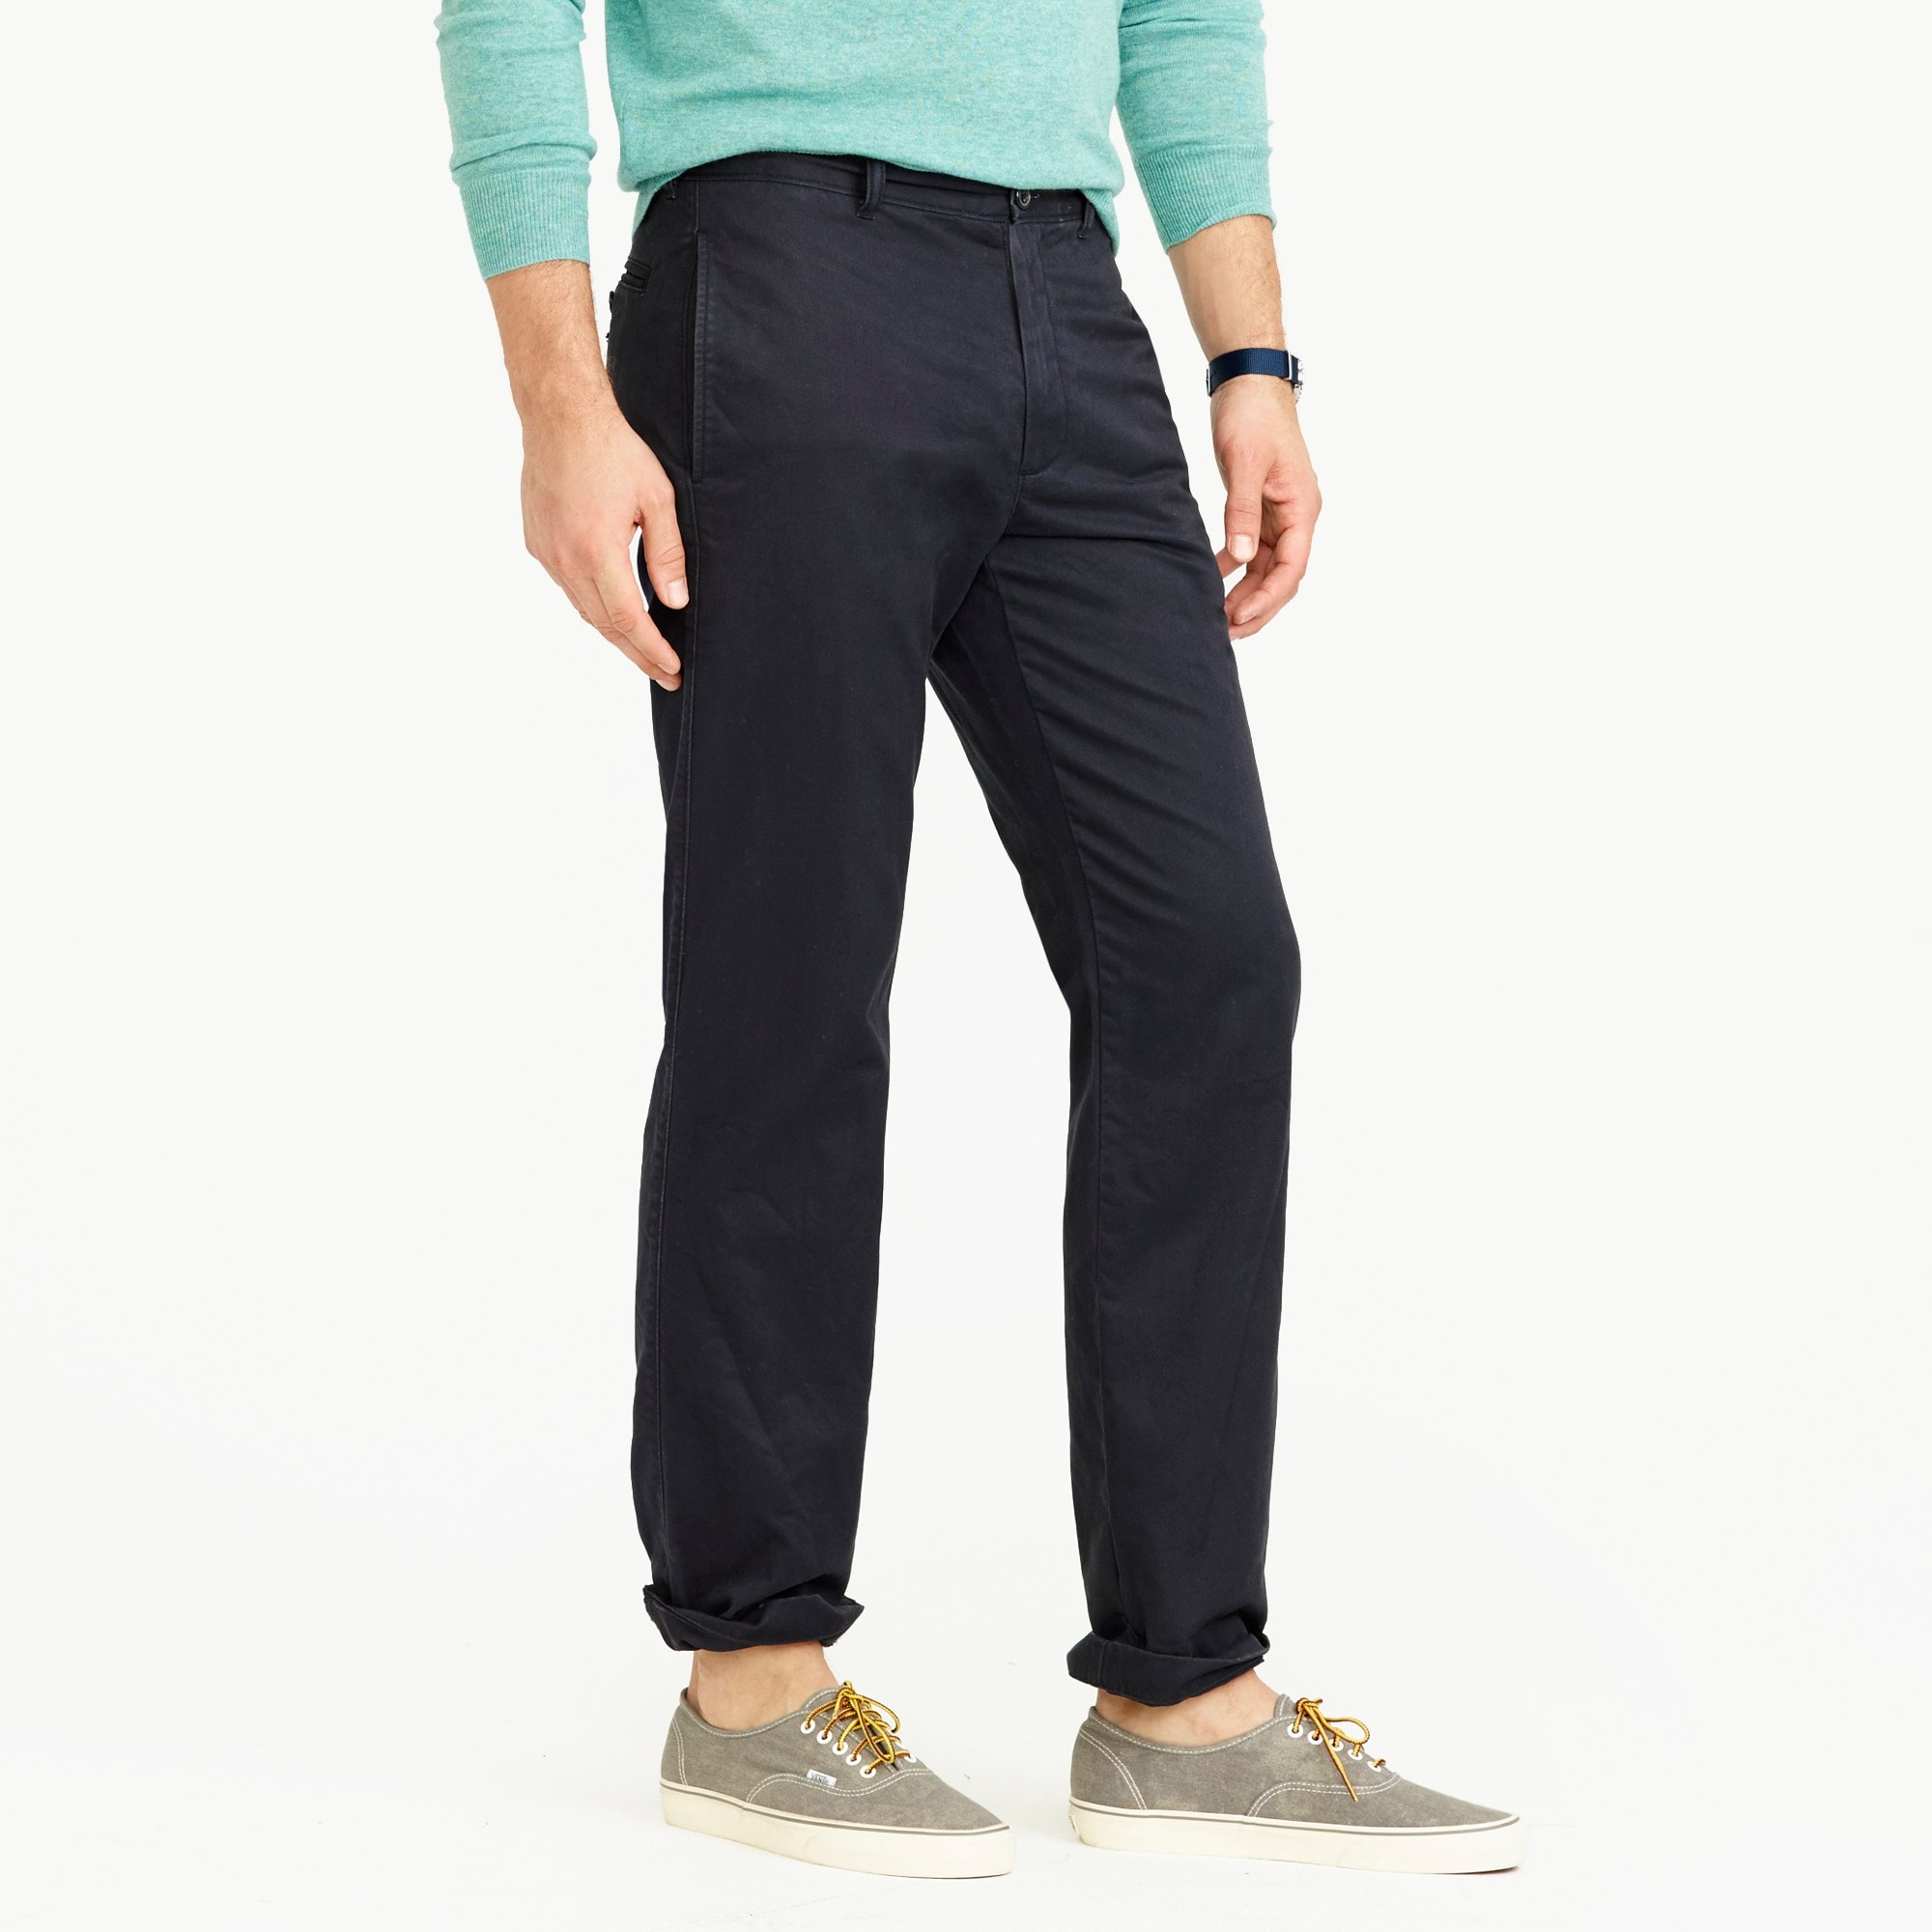 Image 2 for Broken-in chino pant in 1040 athletic fit